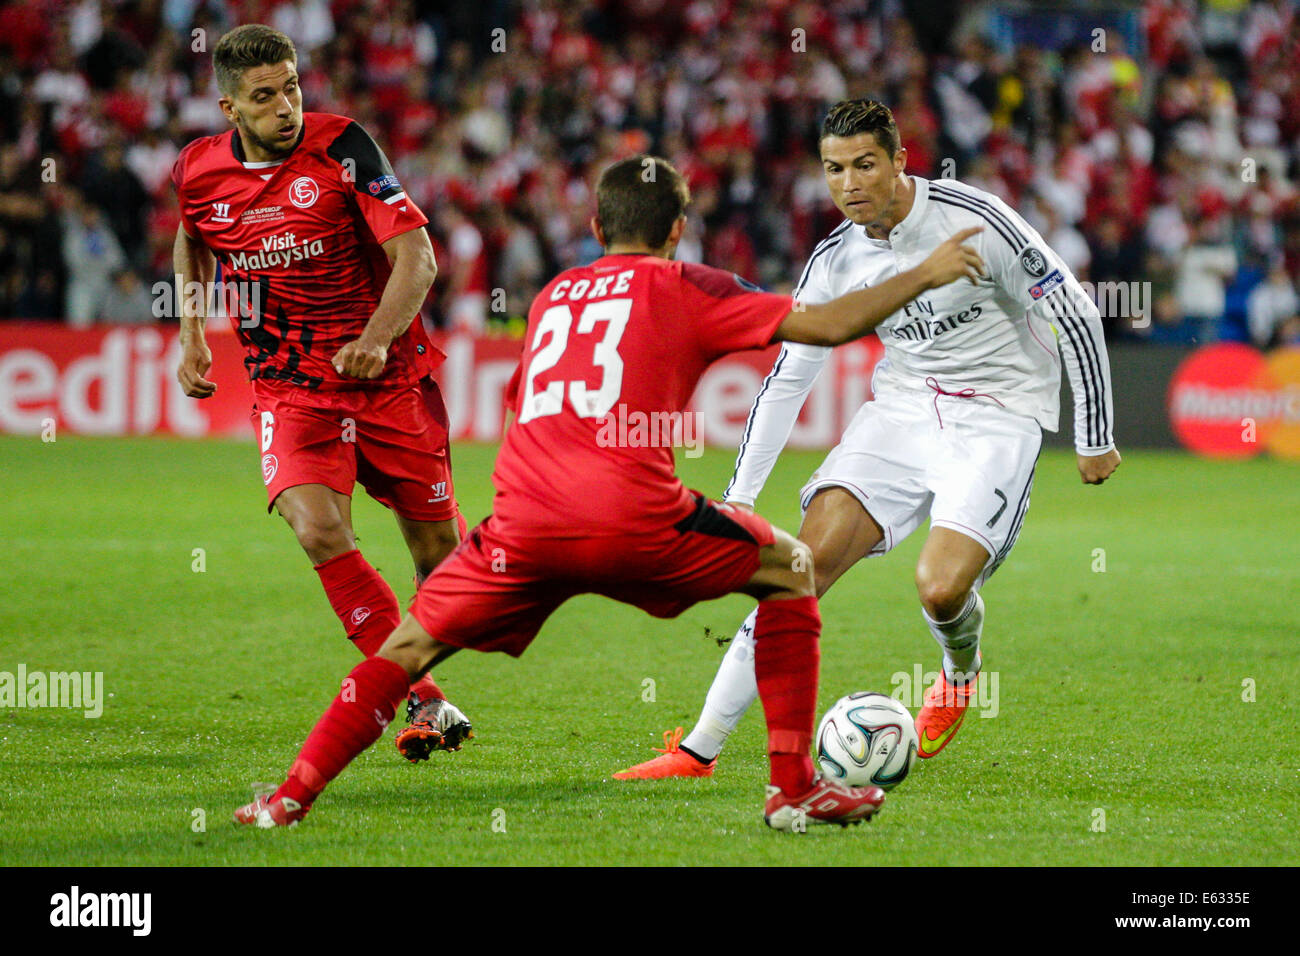 Cardiff Wales 12th Aug 2014 Uefa Super Cup Real Madrid Cf V Stock Photo Alamy